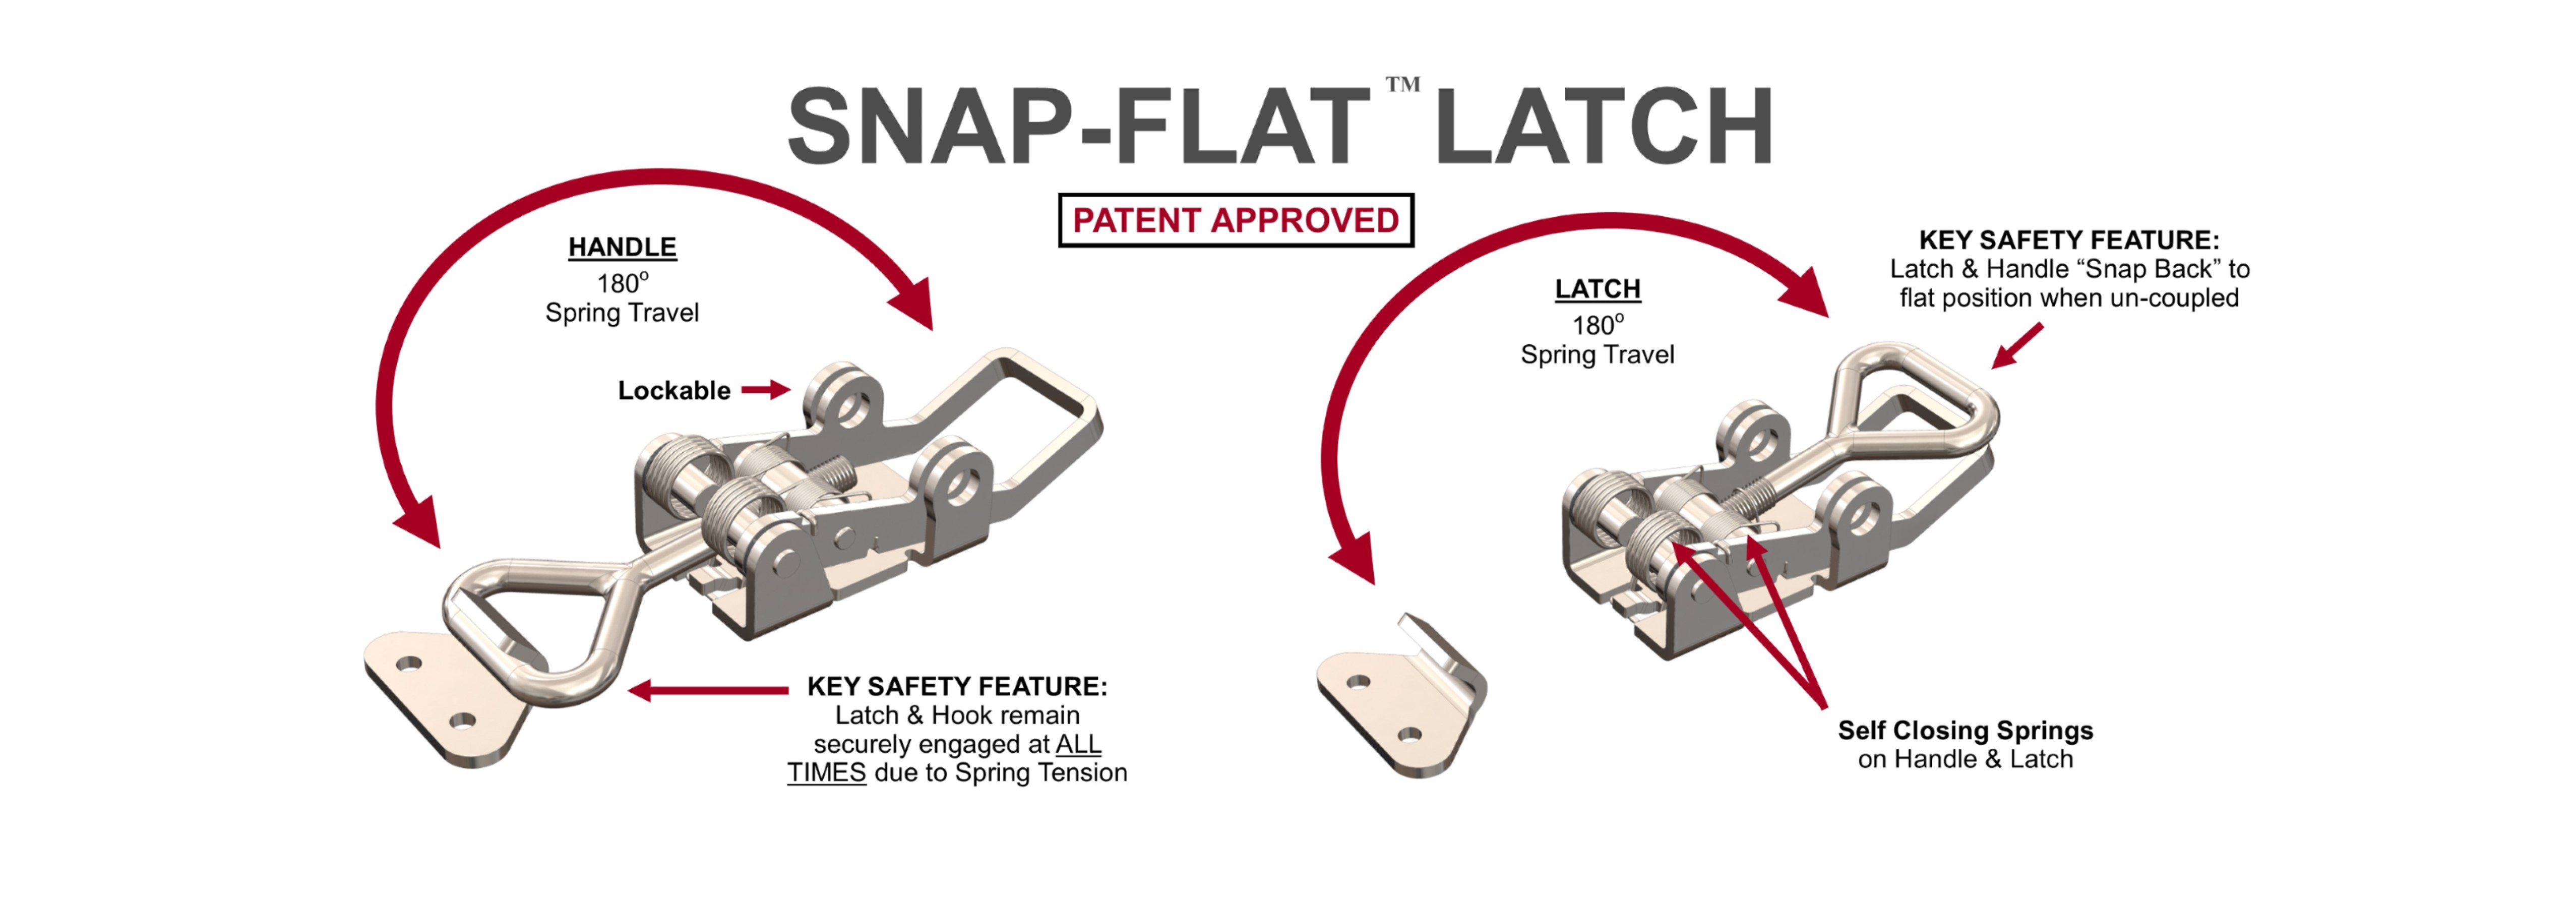 Images of Snap-Flat latch - a safer over center latch